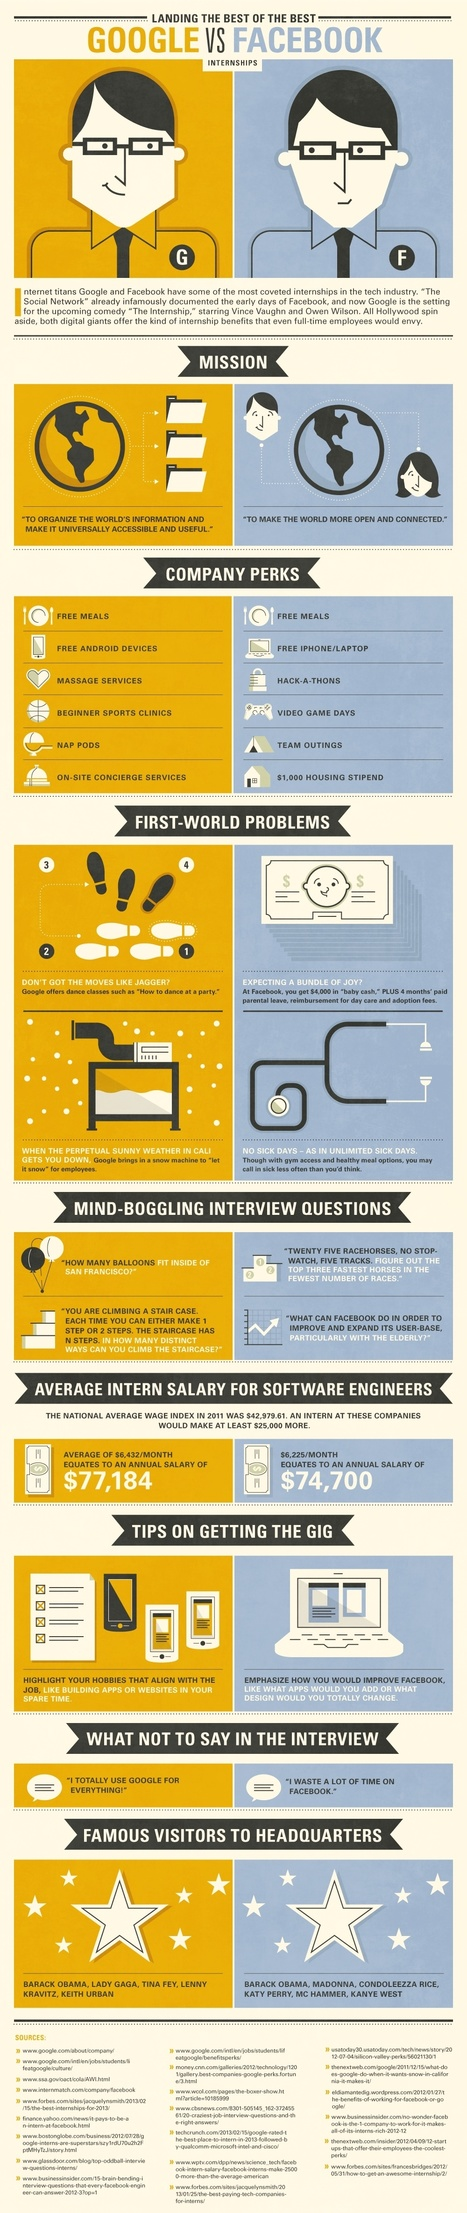 INFOGRAPHIC: Do Google Interns Or Facebook Interns Have It Better? | MarketingHits | Scoop.it